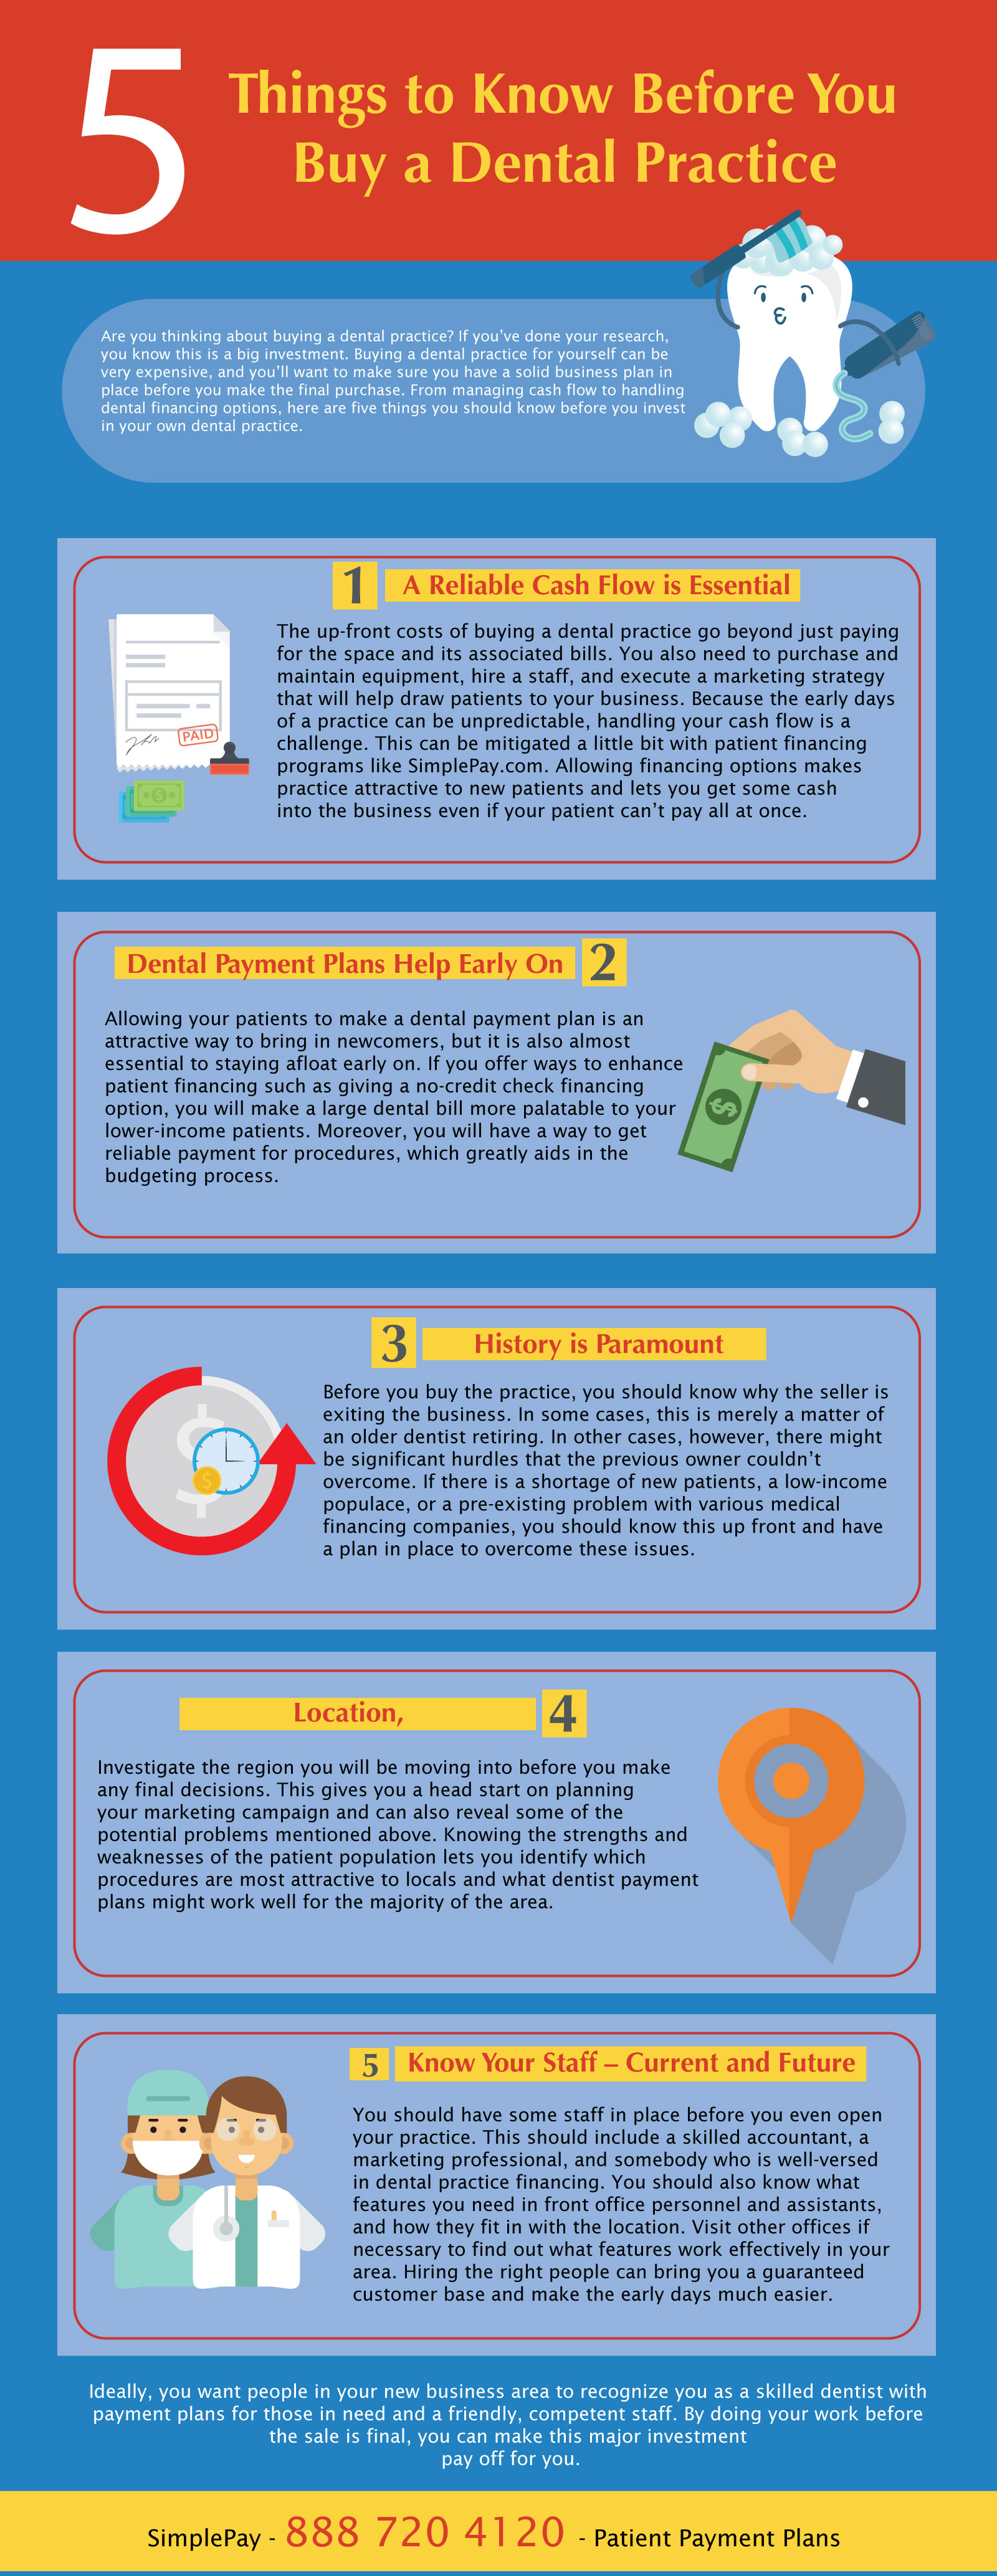 5_Things_to_Know_Before_You_Buy_a_Dental_Practice